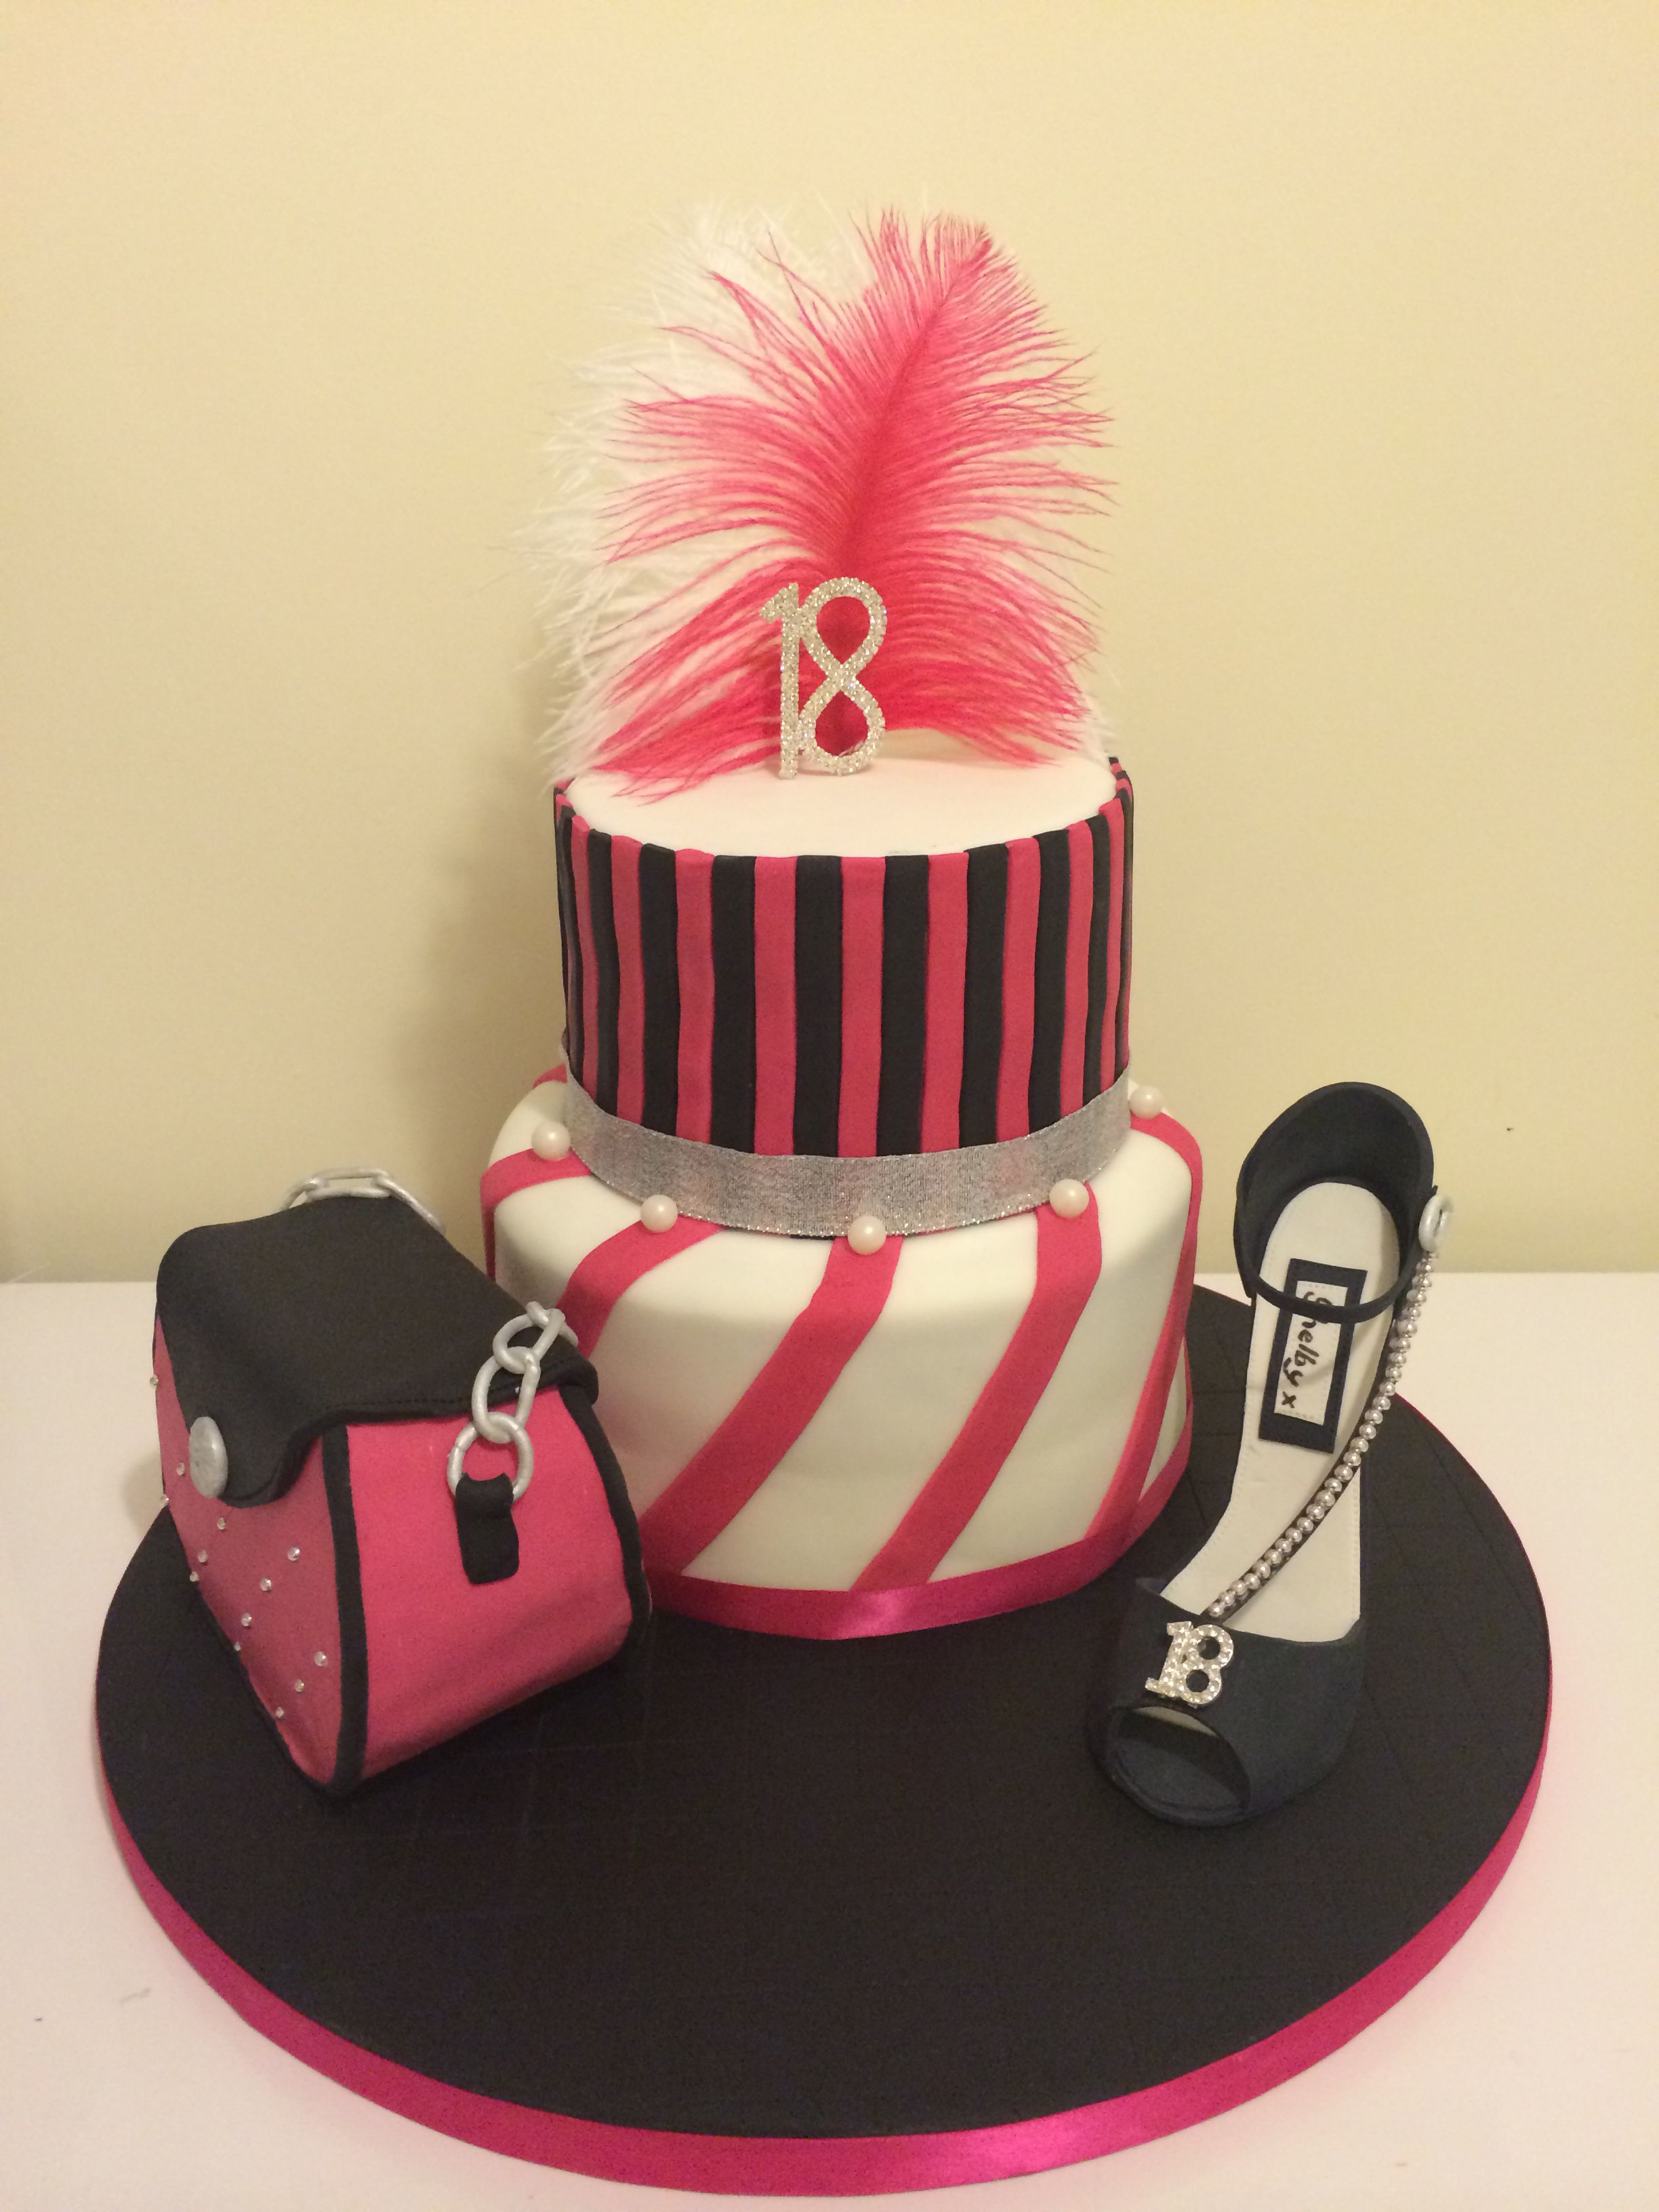 Another shoe and handbag cake I've made recently